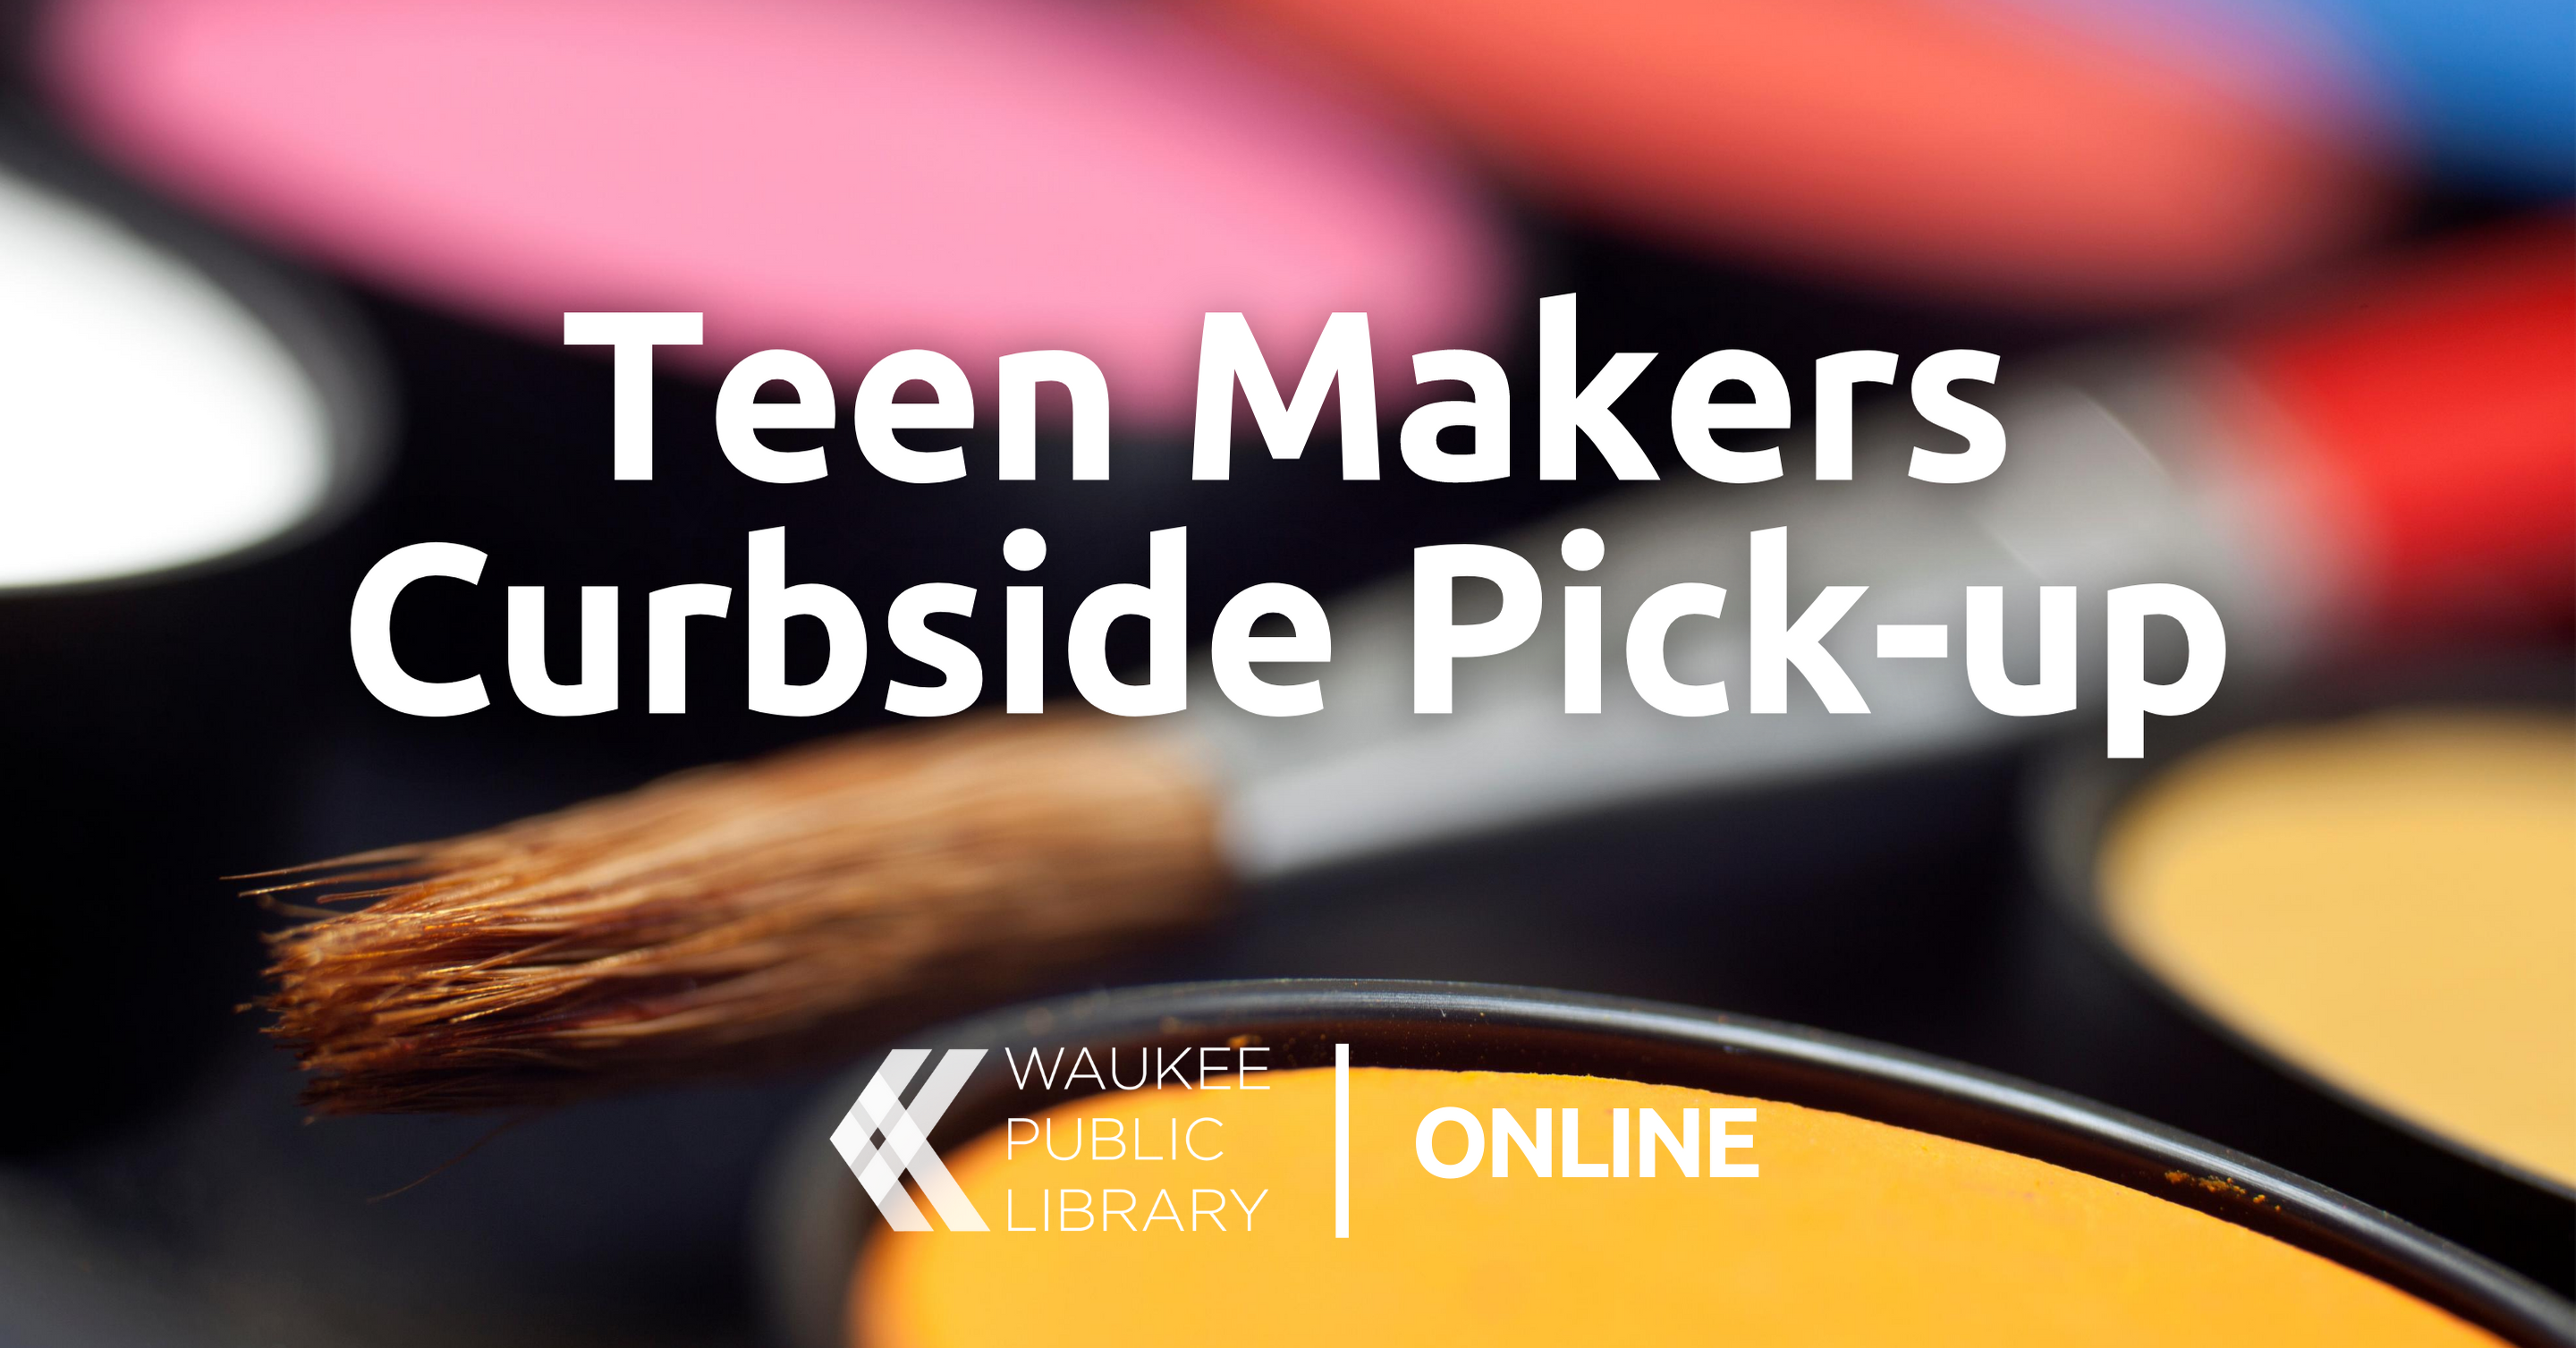 Teen Makers Curbside Pick-up